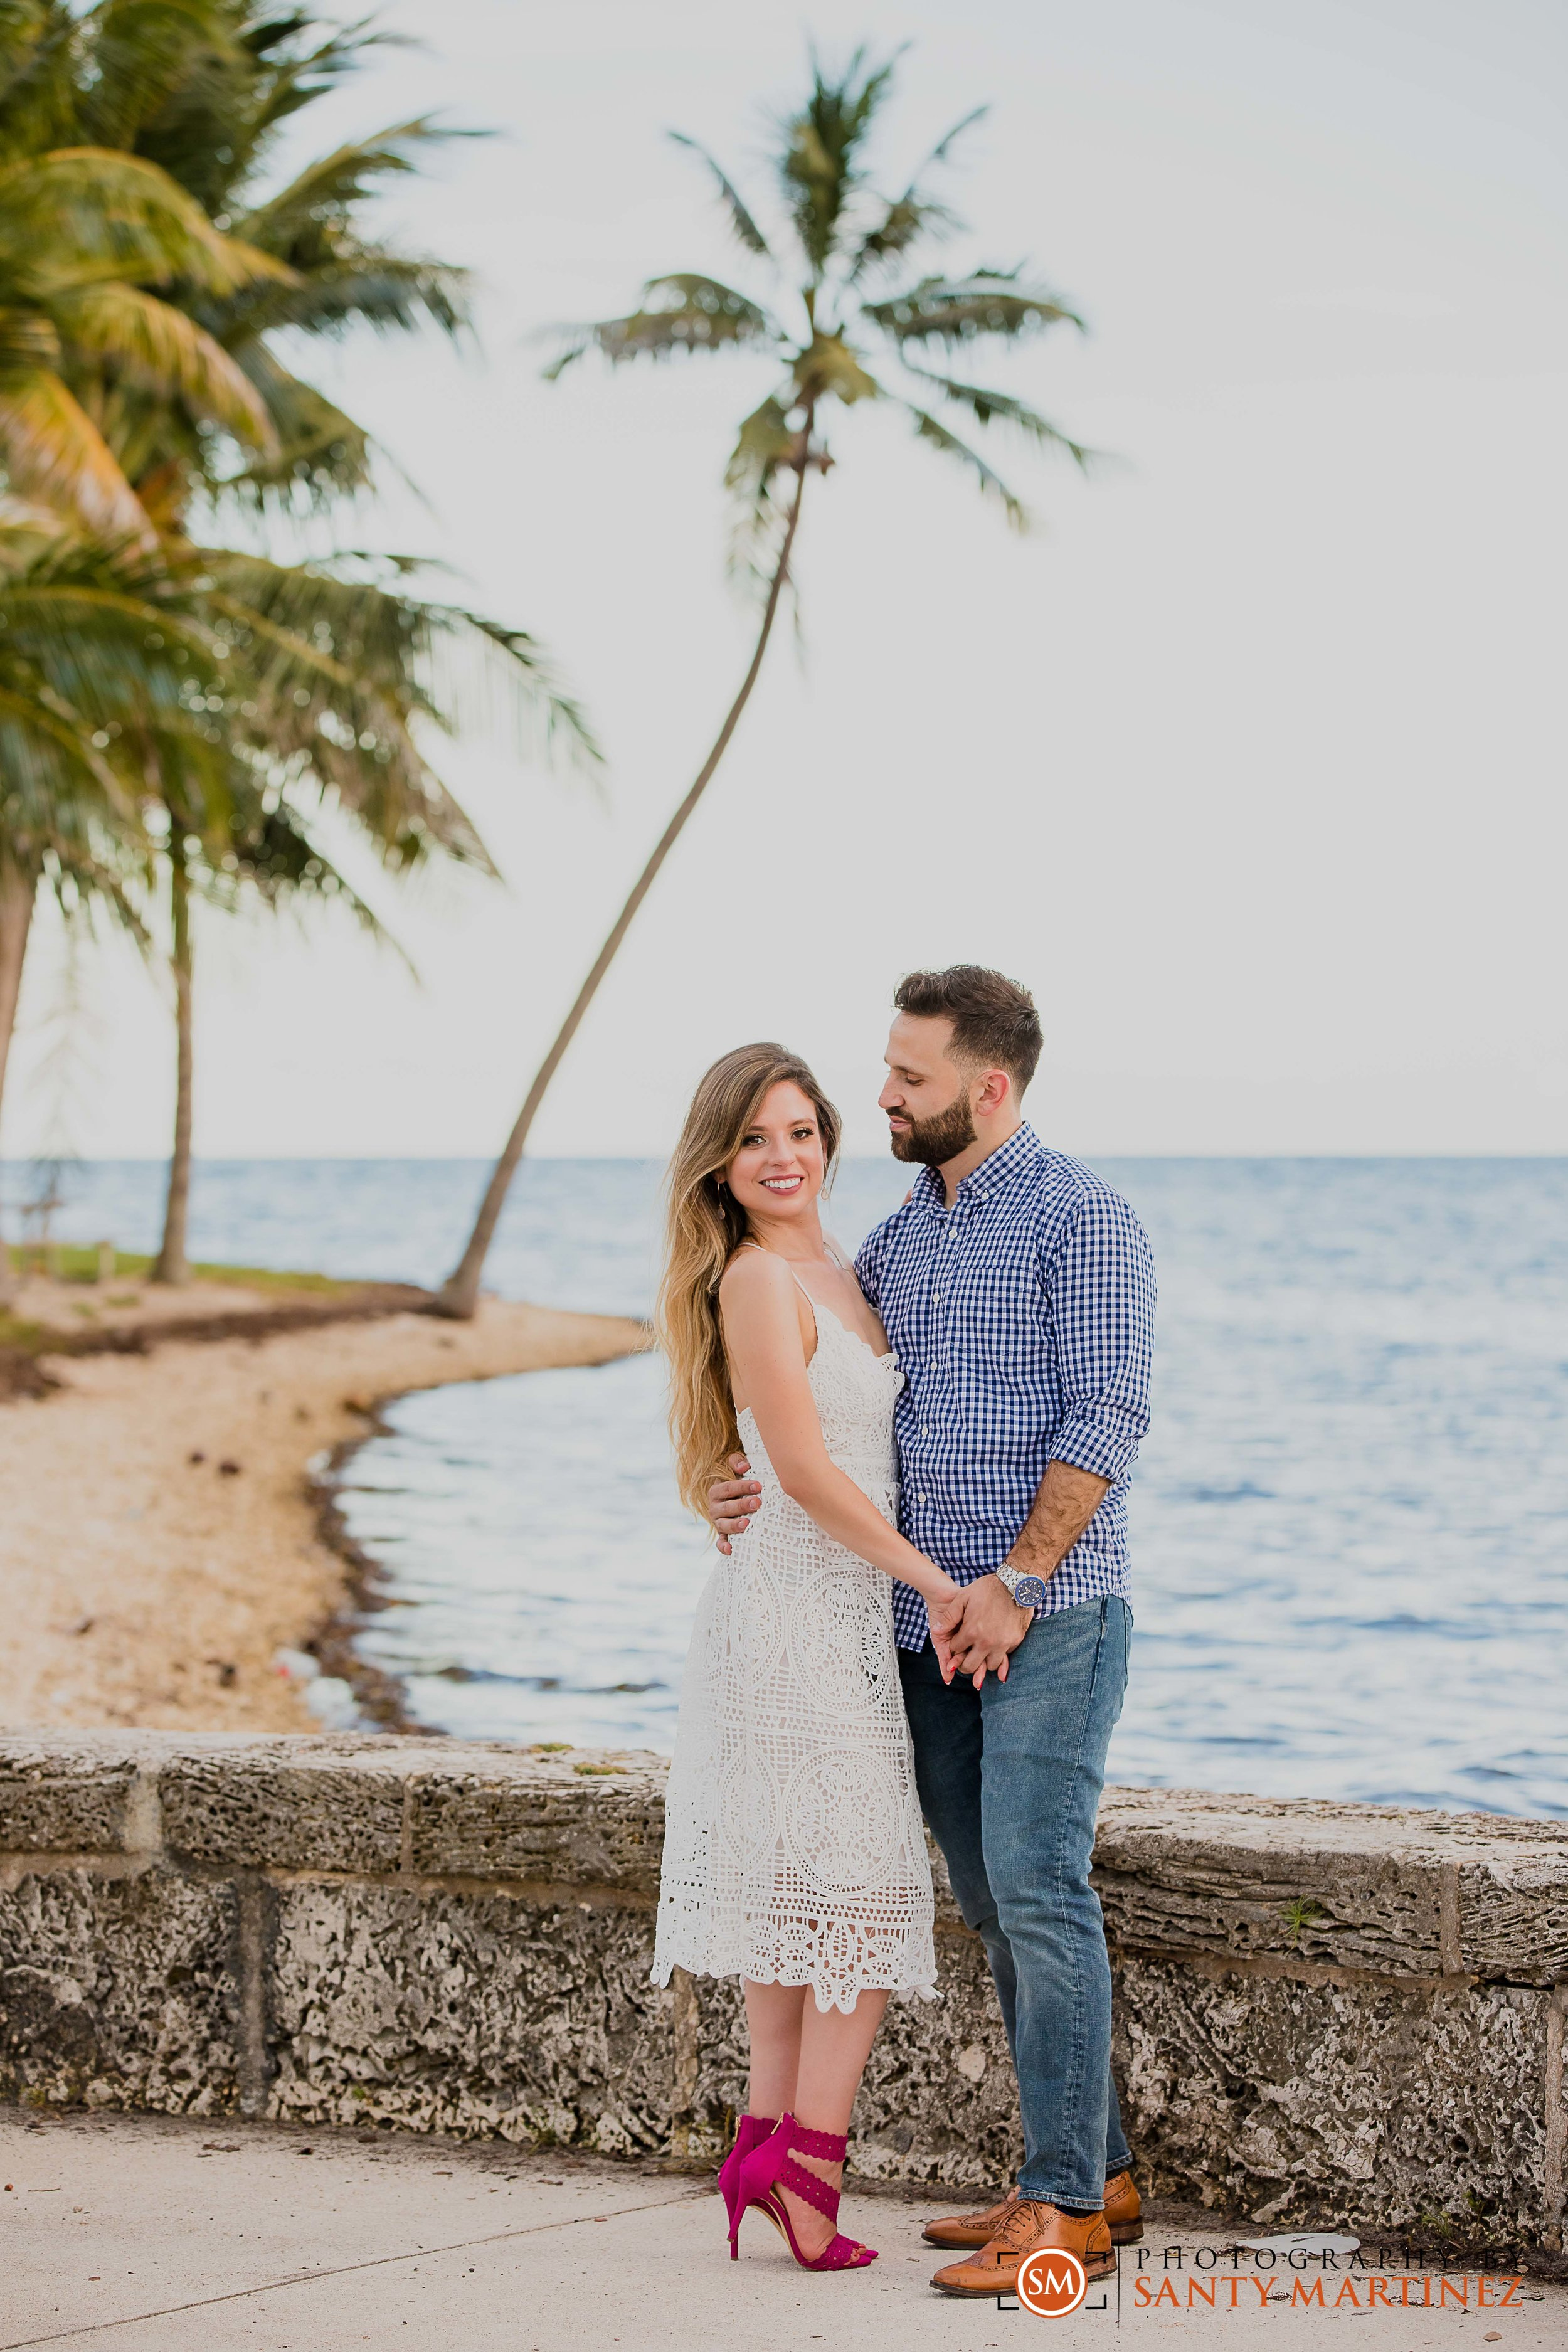 Engagement Session - Matheson Hammock Park - Santy Martinez Wedding Photographer-17.jpg